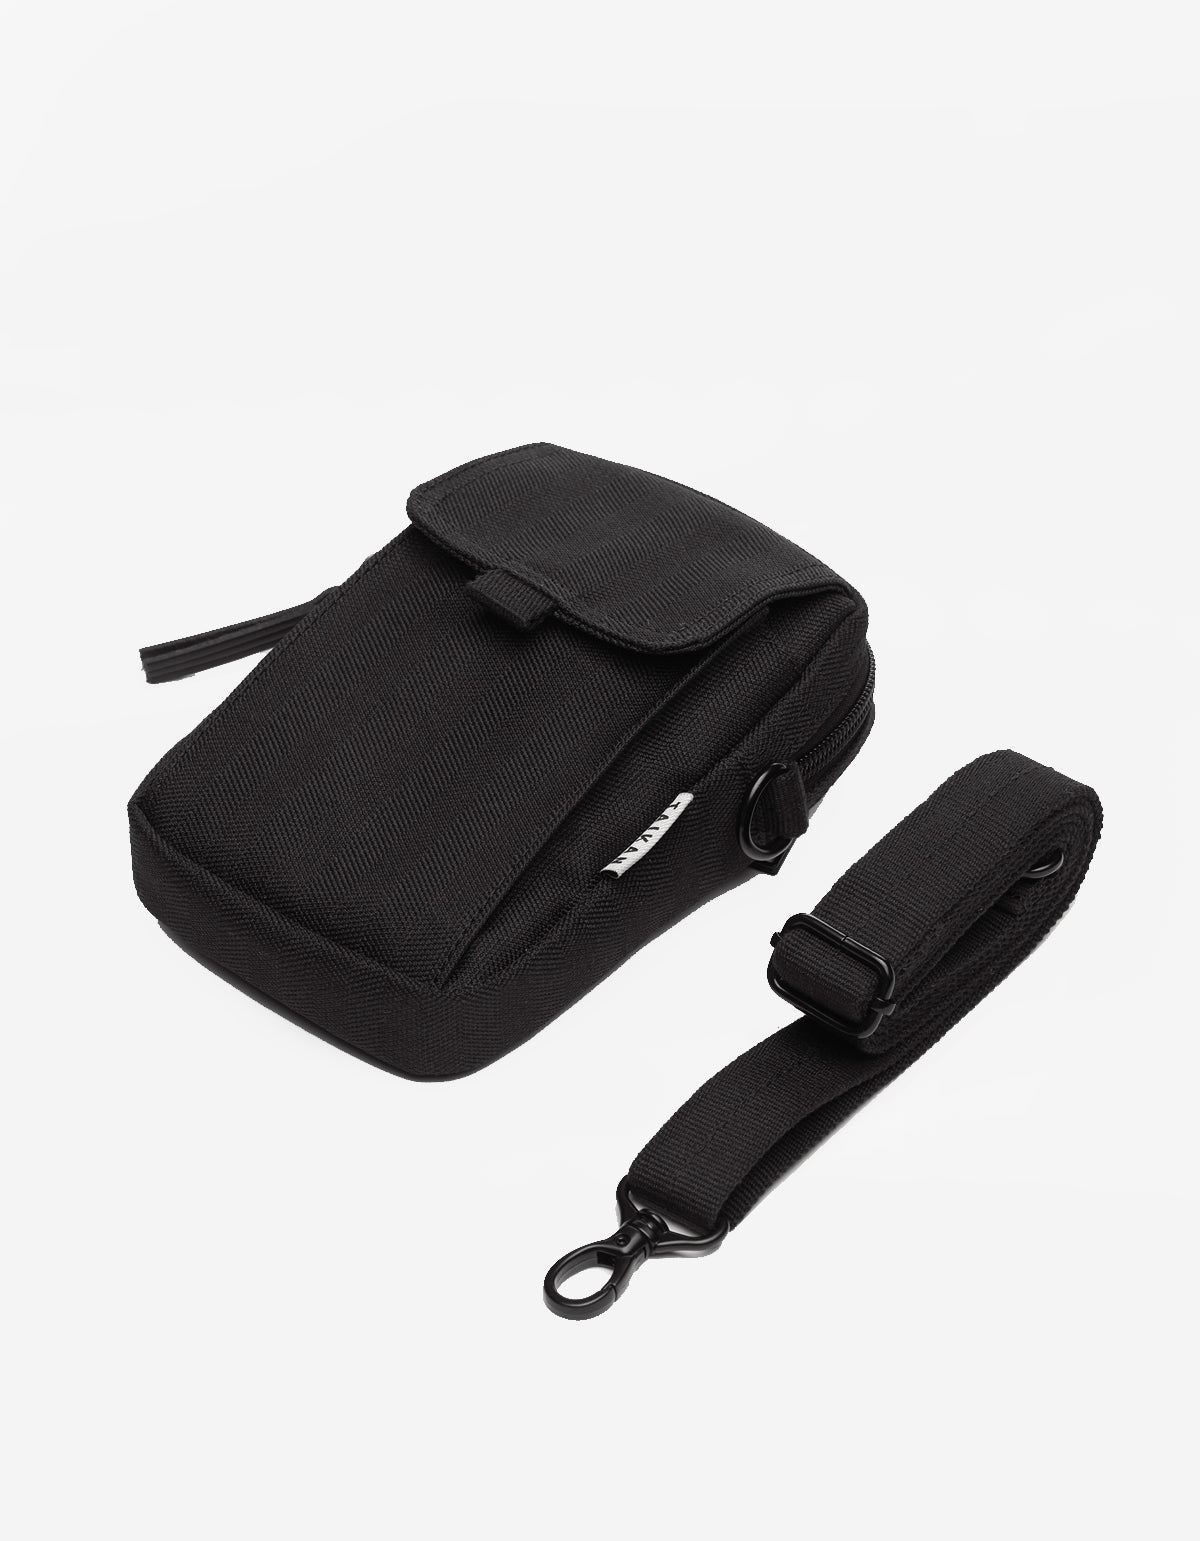 Taikan Raven Camera Bag Matte Black